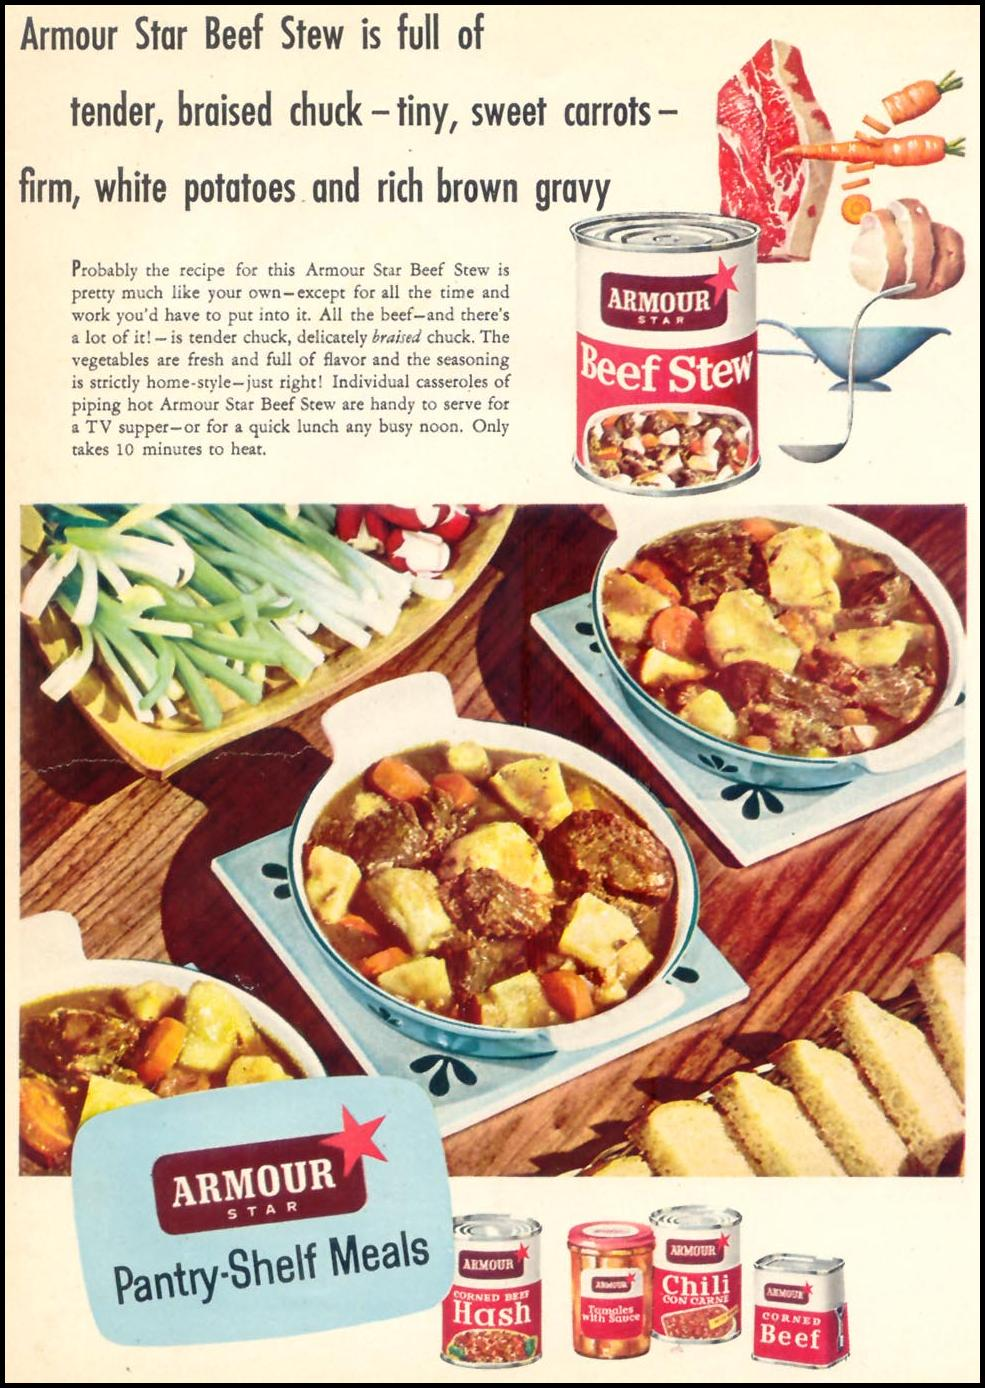 ARMOUR PANTY-SHELF MEALS WOMAN'S DAY 10/01/1954 p. 28